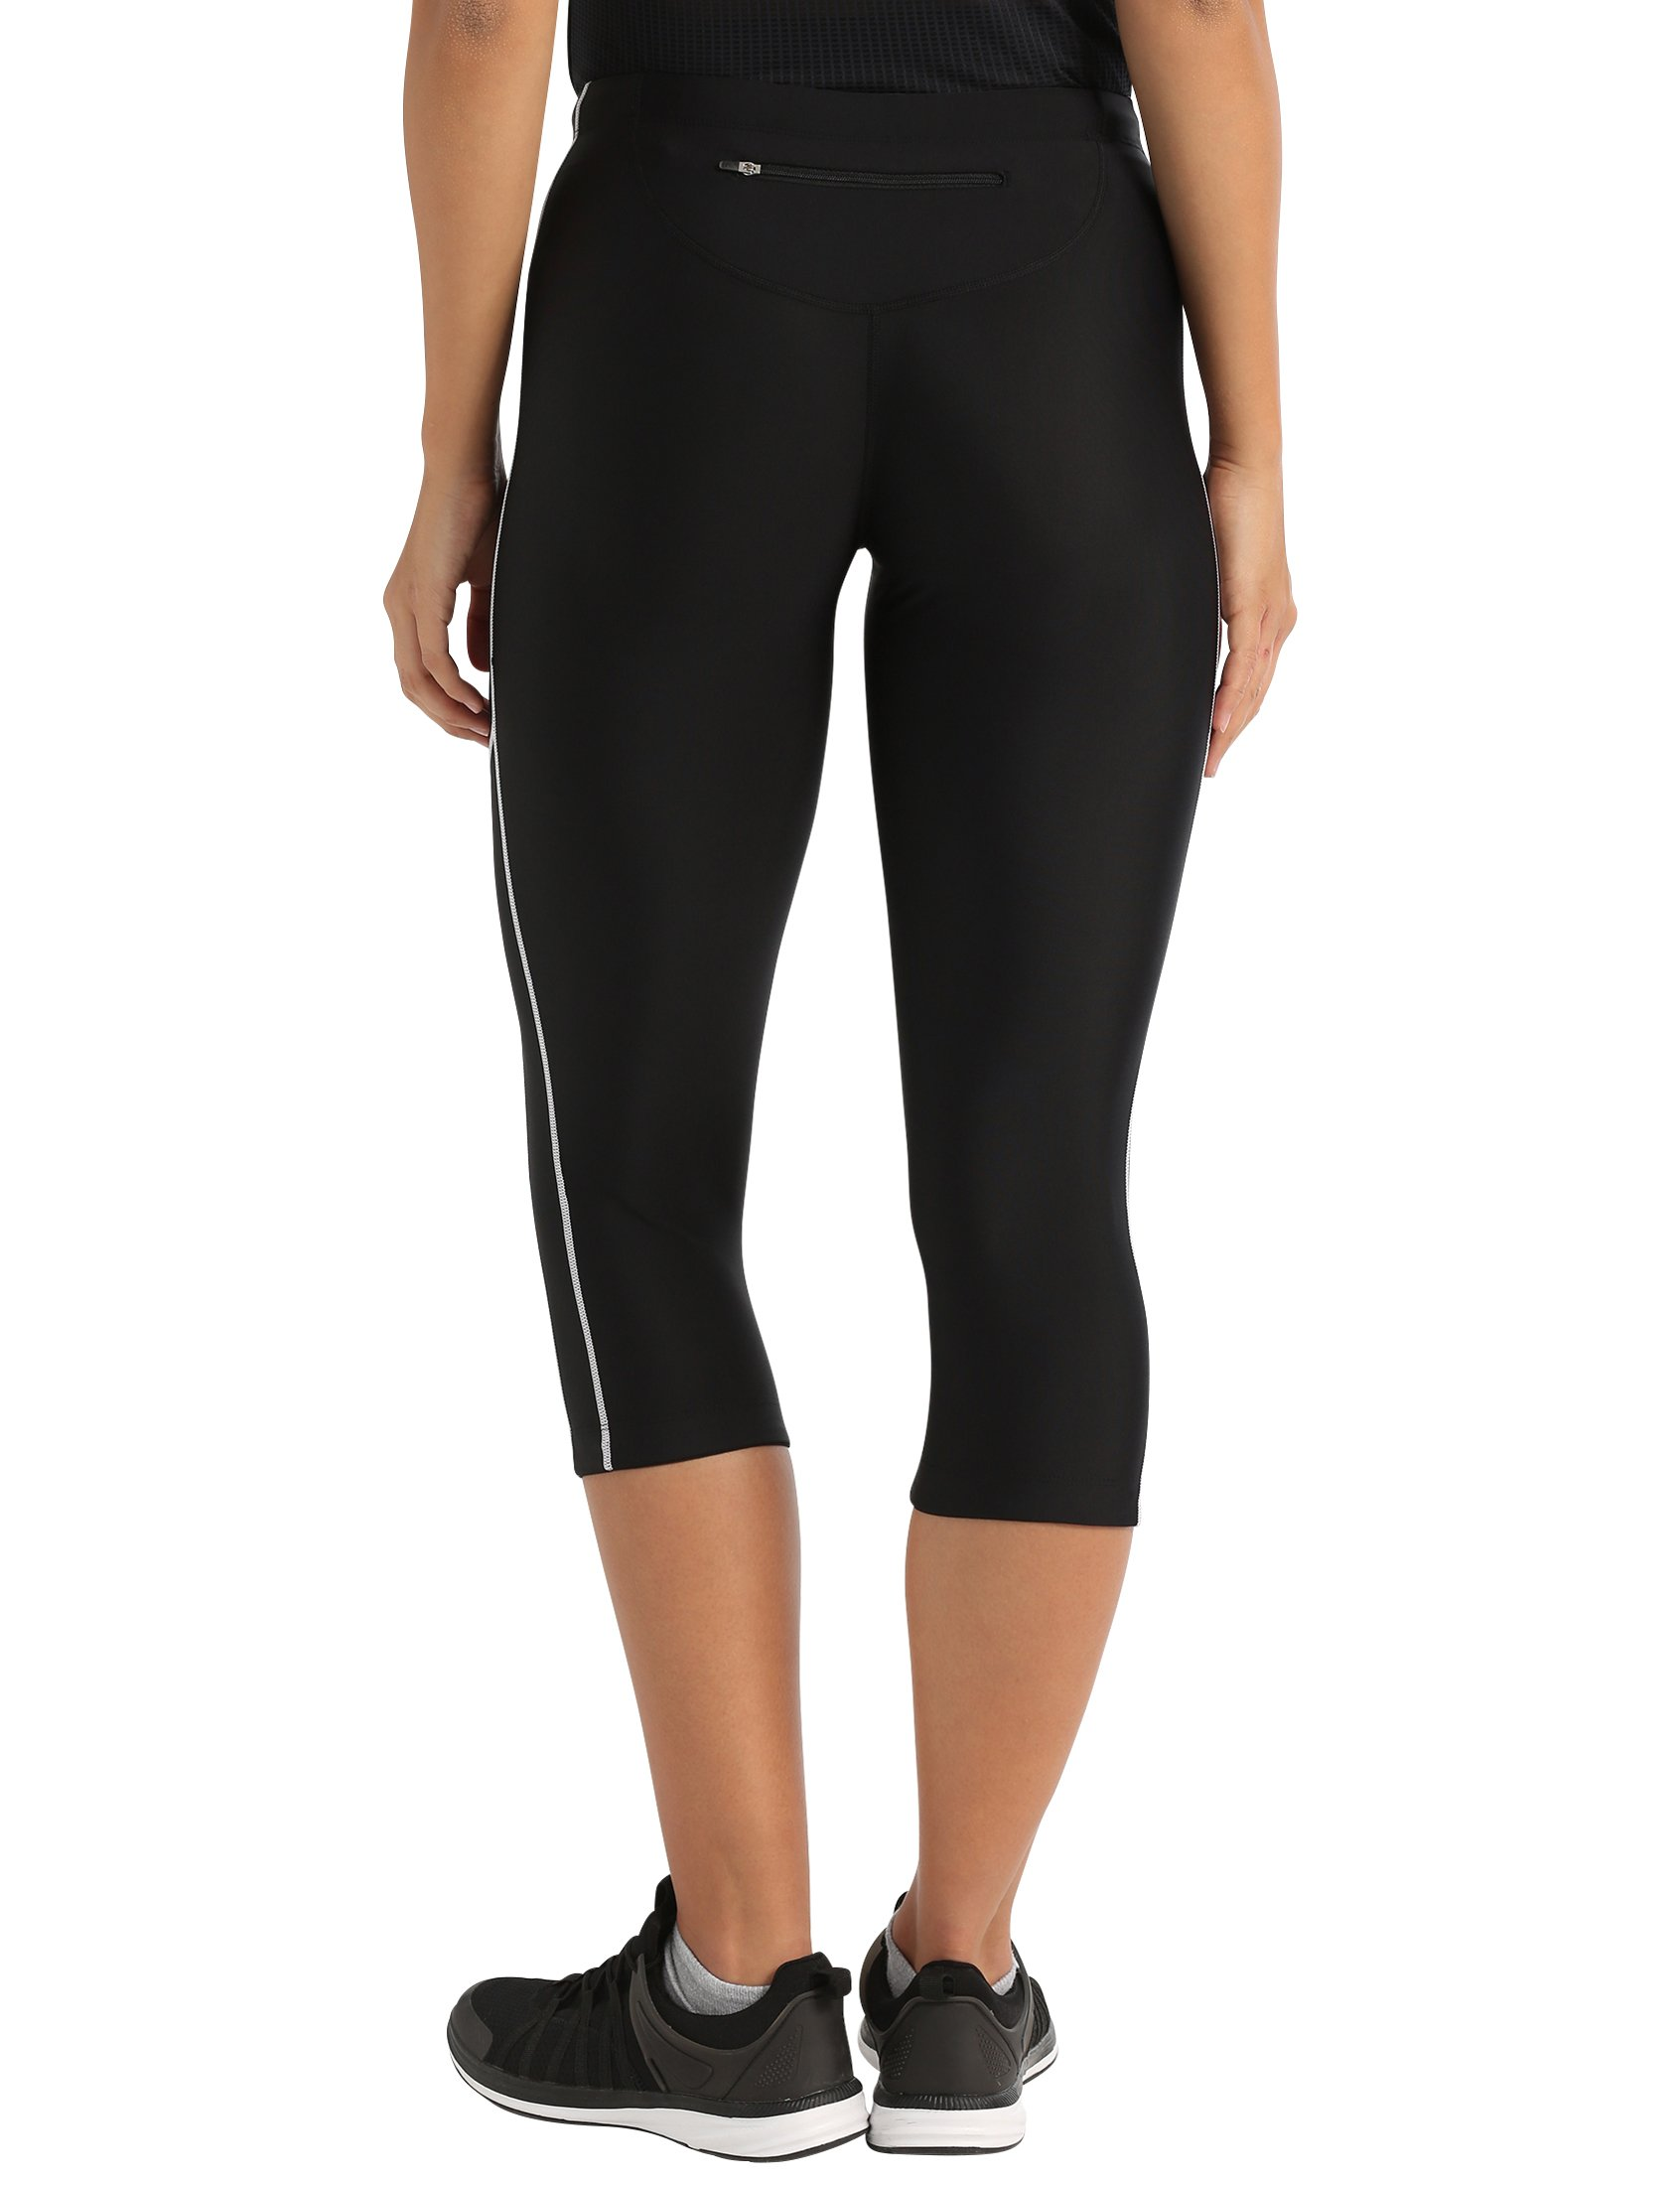 71ohZwdl TL - Ultrasport Women's Running Pants Capri with Compression Effect & Quick-Dry-Function